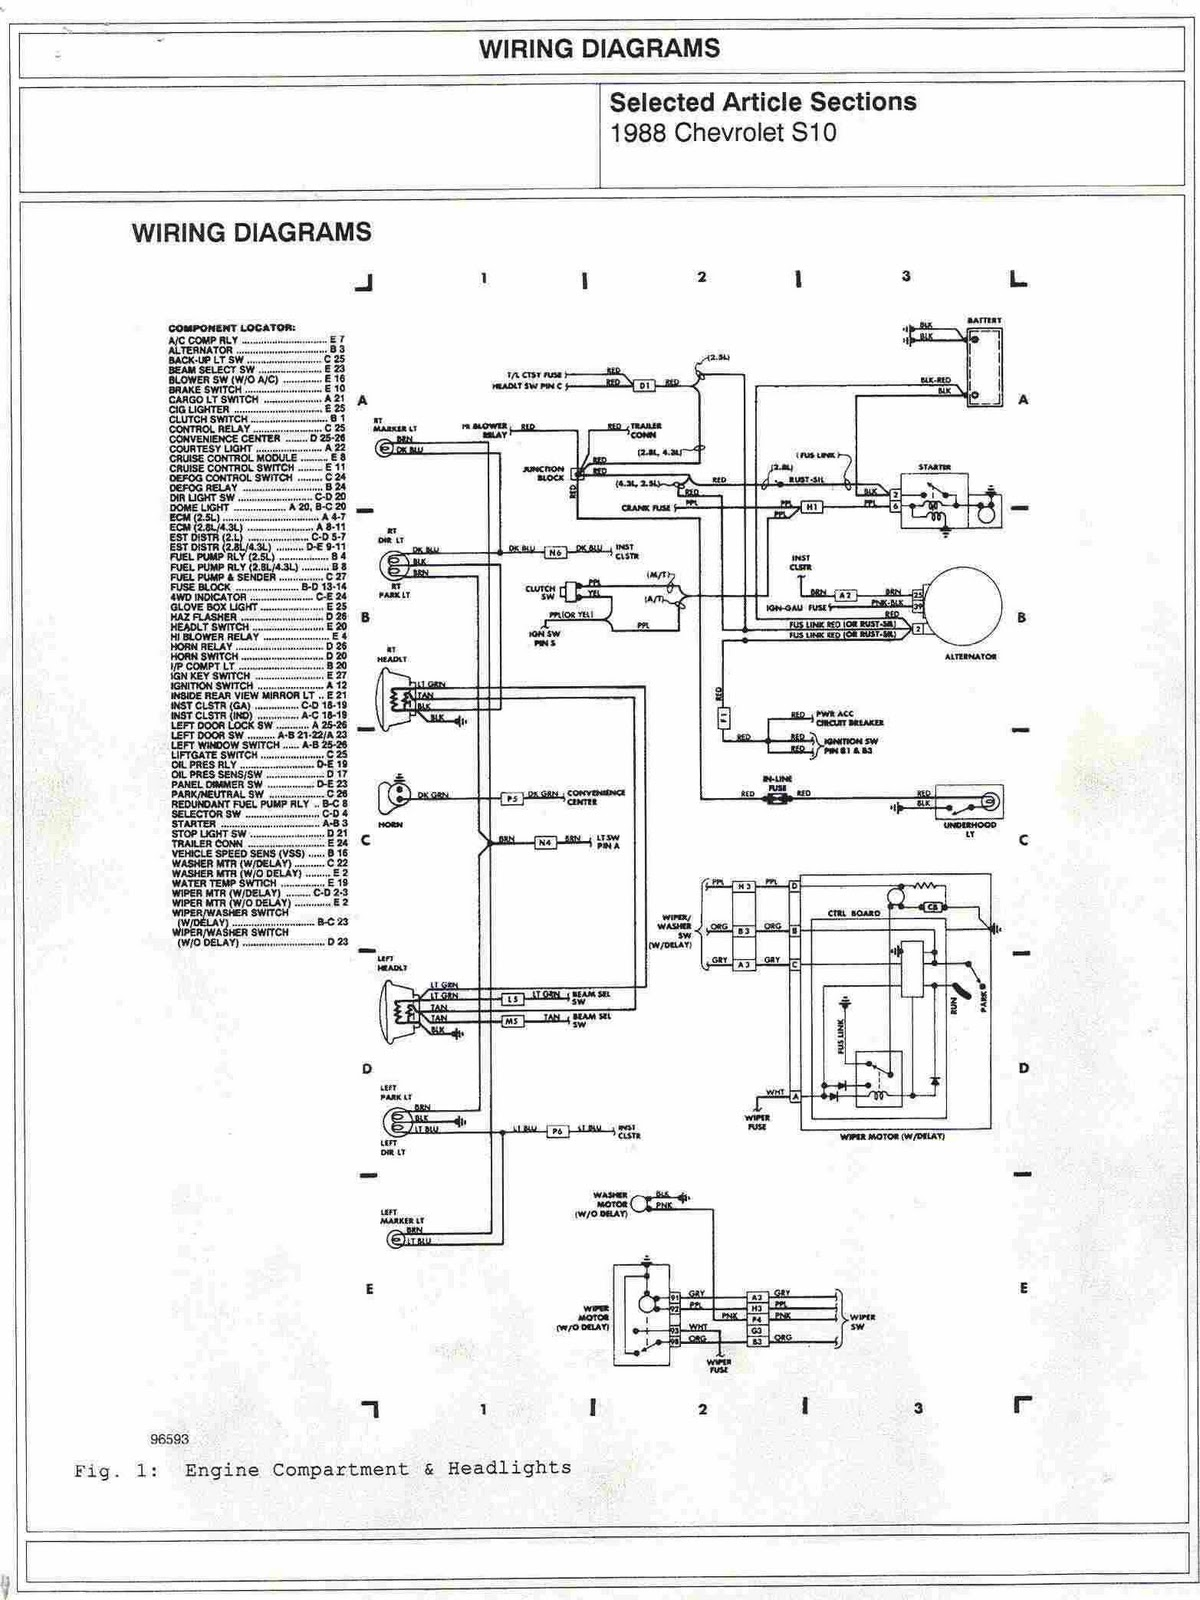 C11 Pc Wiring Diagram 1988 Chevrolet S10 Engine Compartment And Headlights